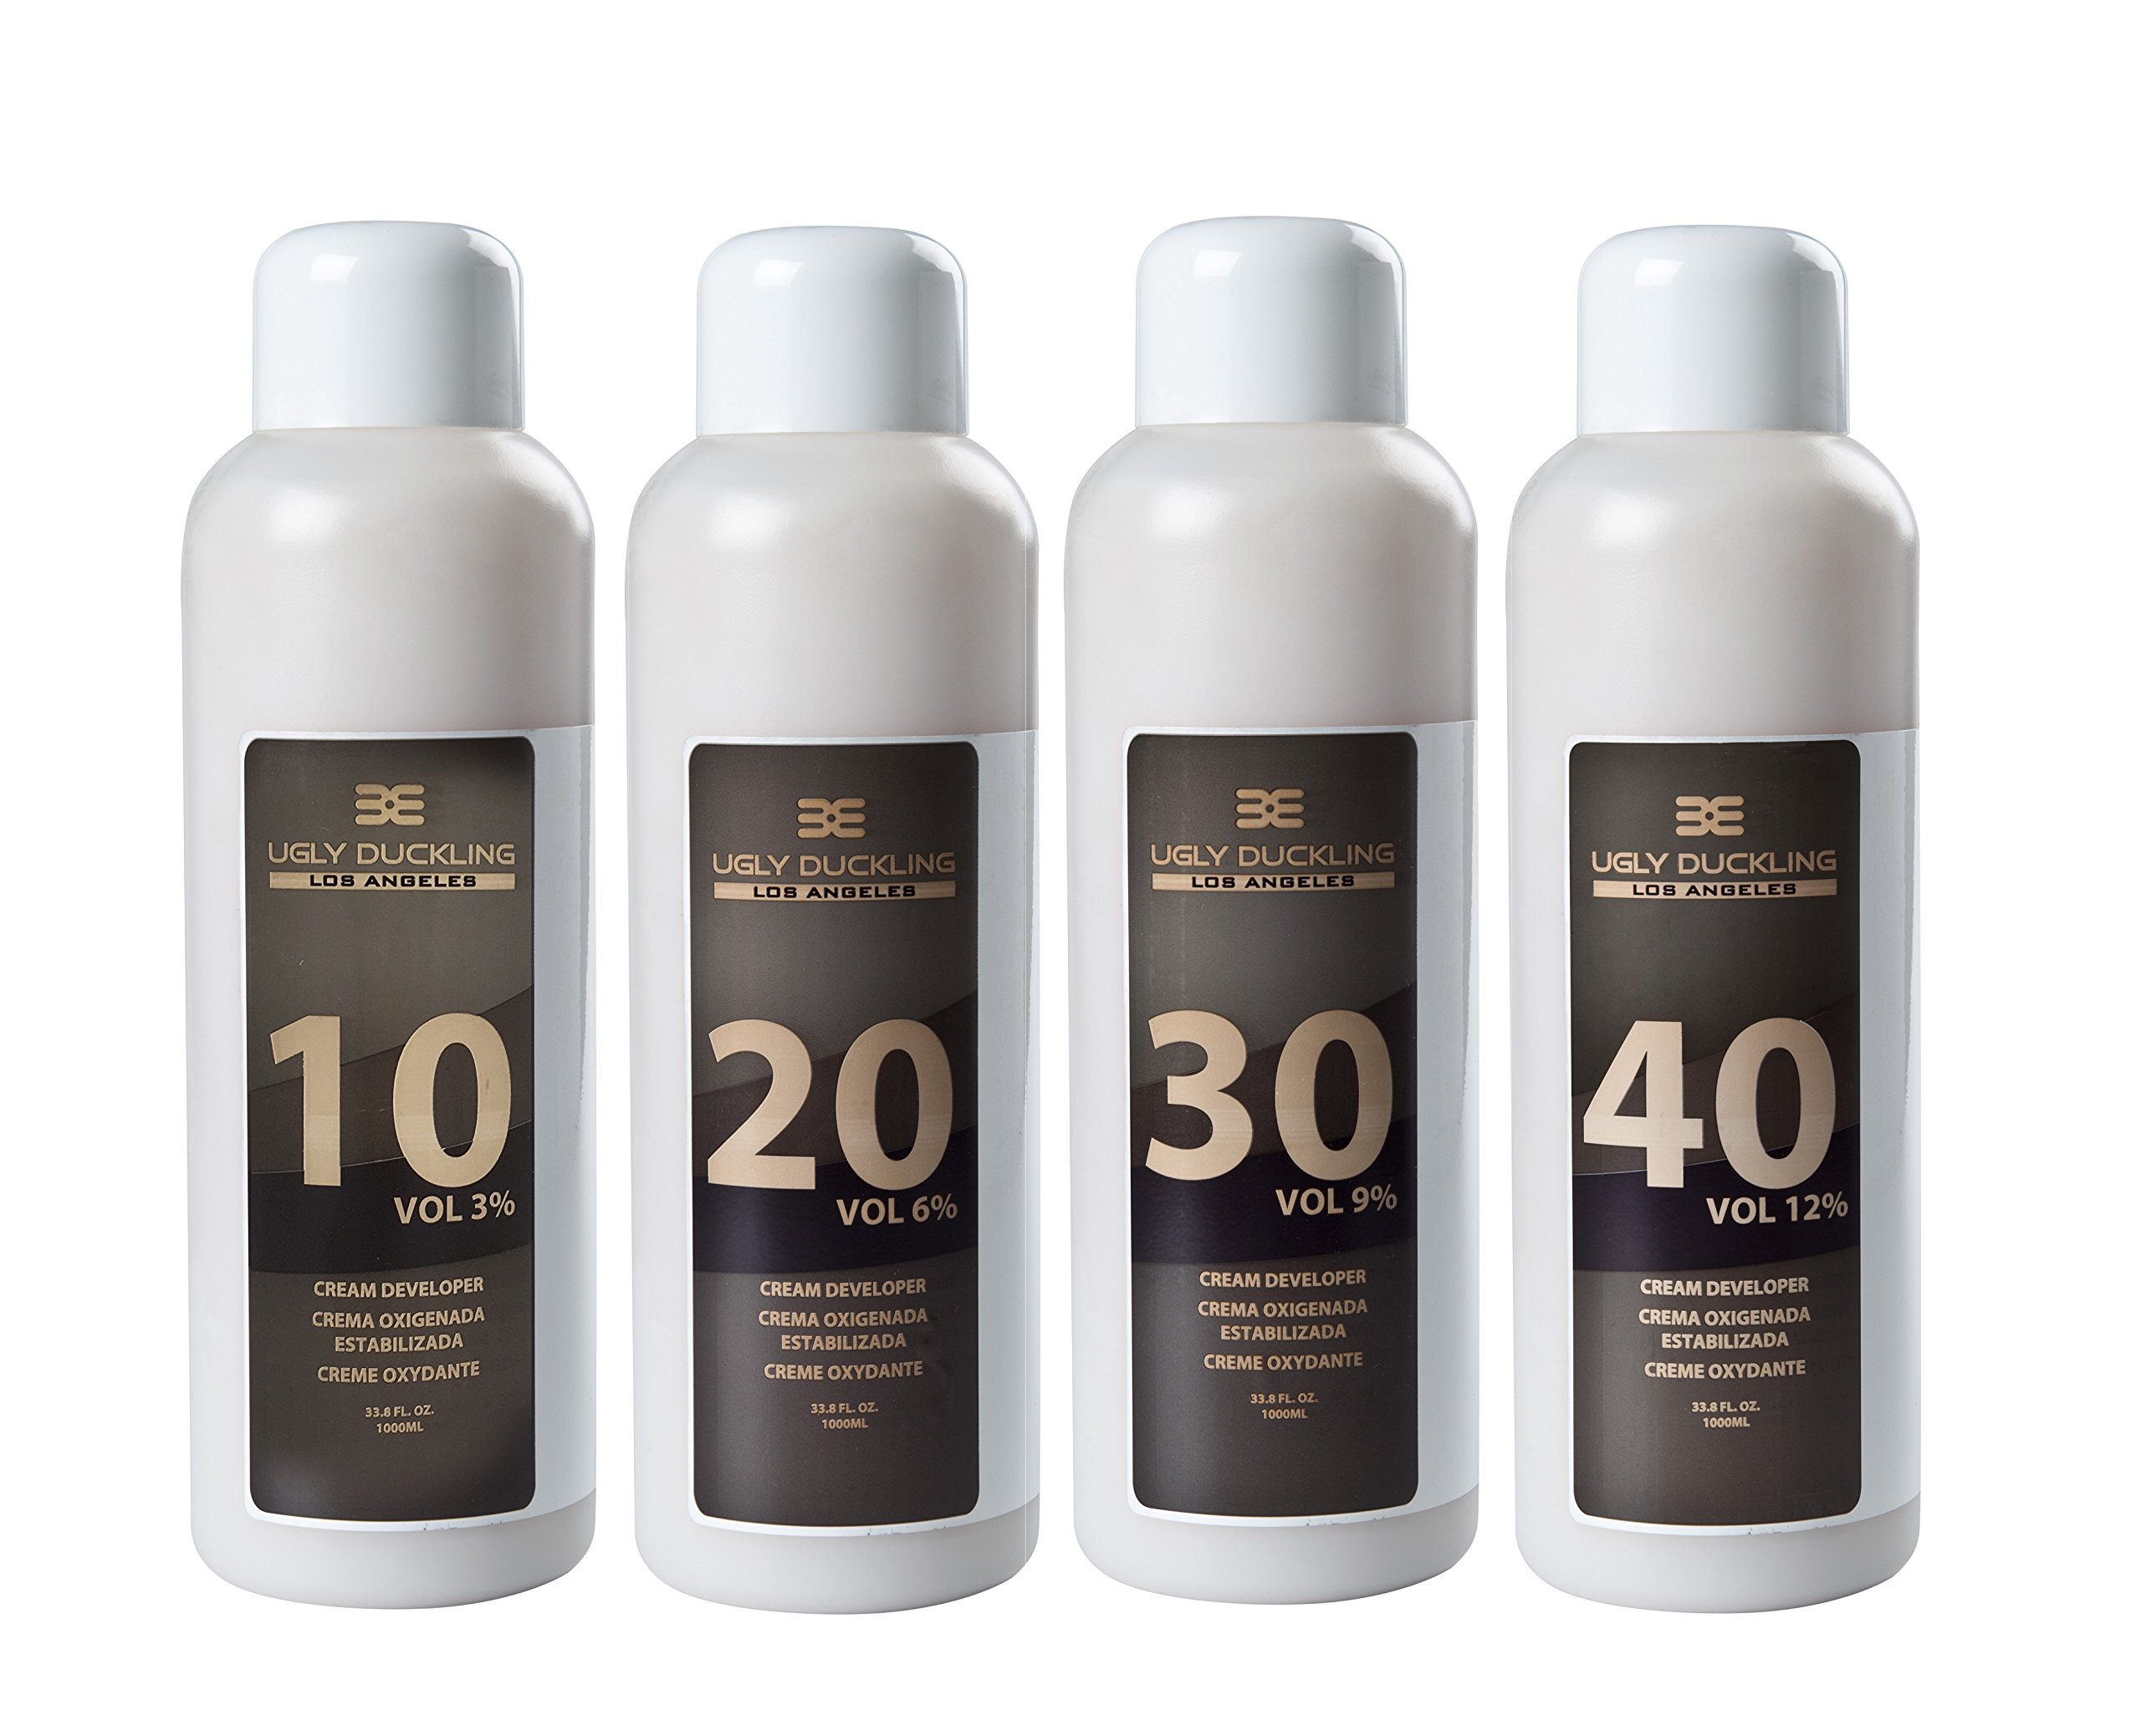 Ugly Duckling Los Angeles Professional 30 Volume (9%) CREAM DEVELOPER 33 oz (1 liter). For salon use, large size. For 2-3 levels of lift. Made in Europe by Ugly Duckling Los Angeles (Image #2)